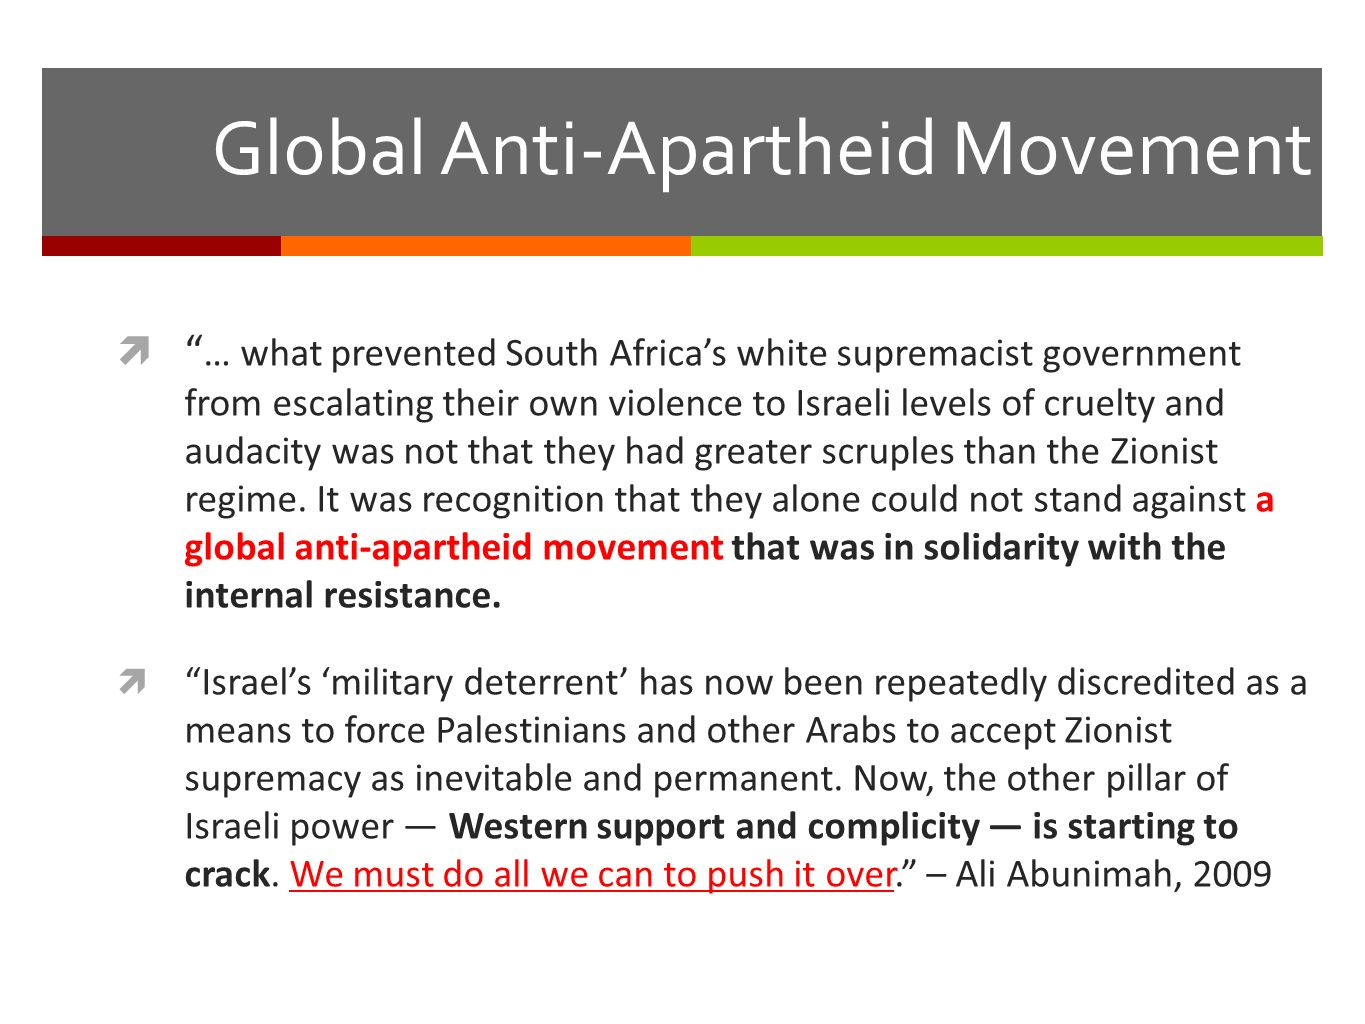 Similarities in struggle against apartheid: South Africa and Palestine